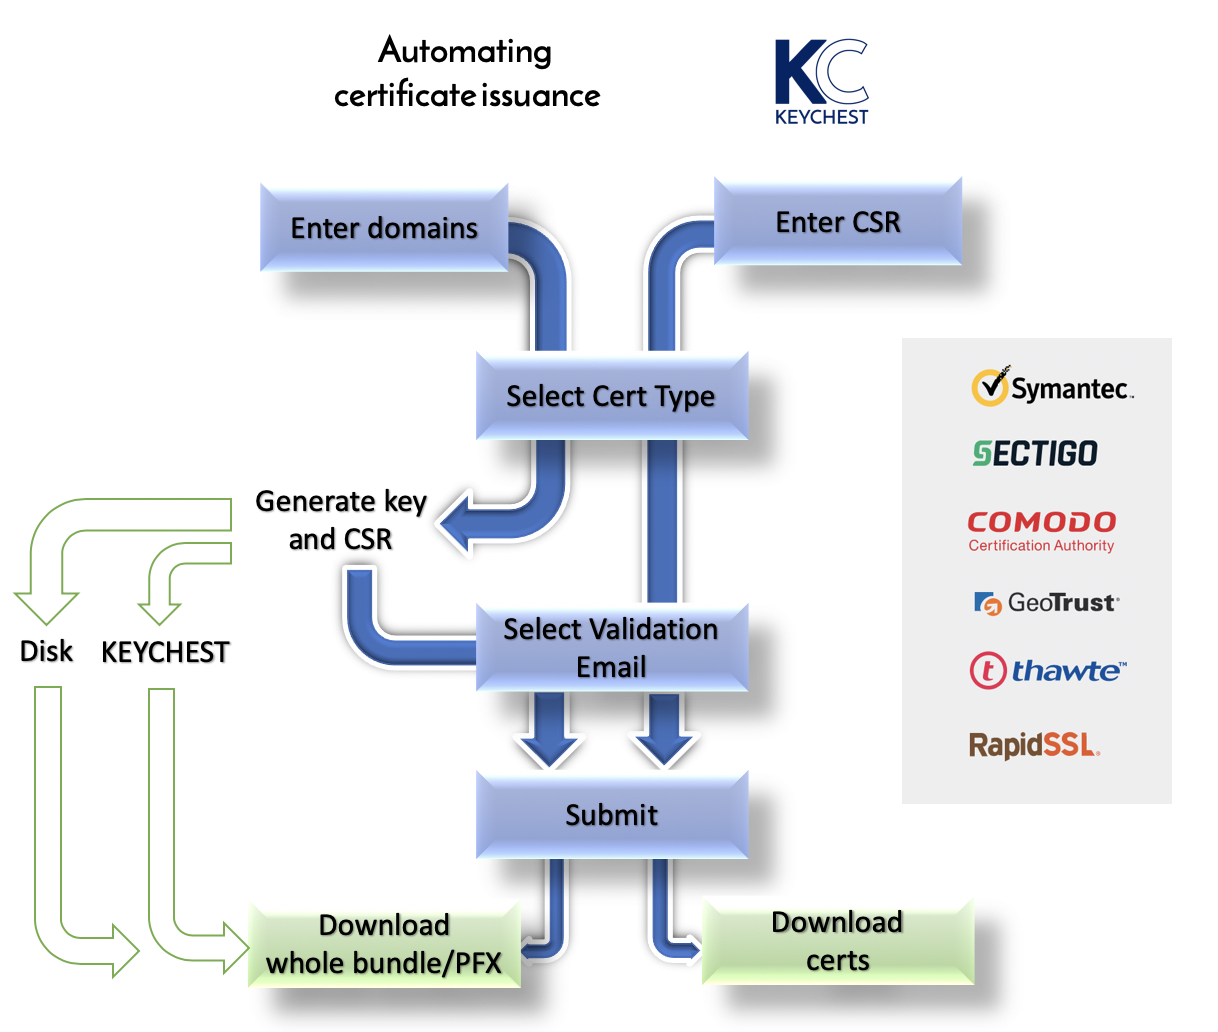 KEYCHEST - issuance of new certificates